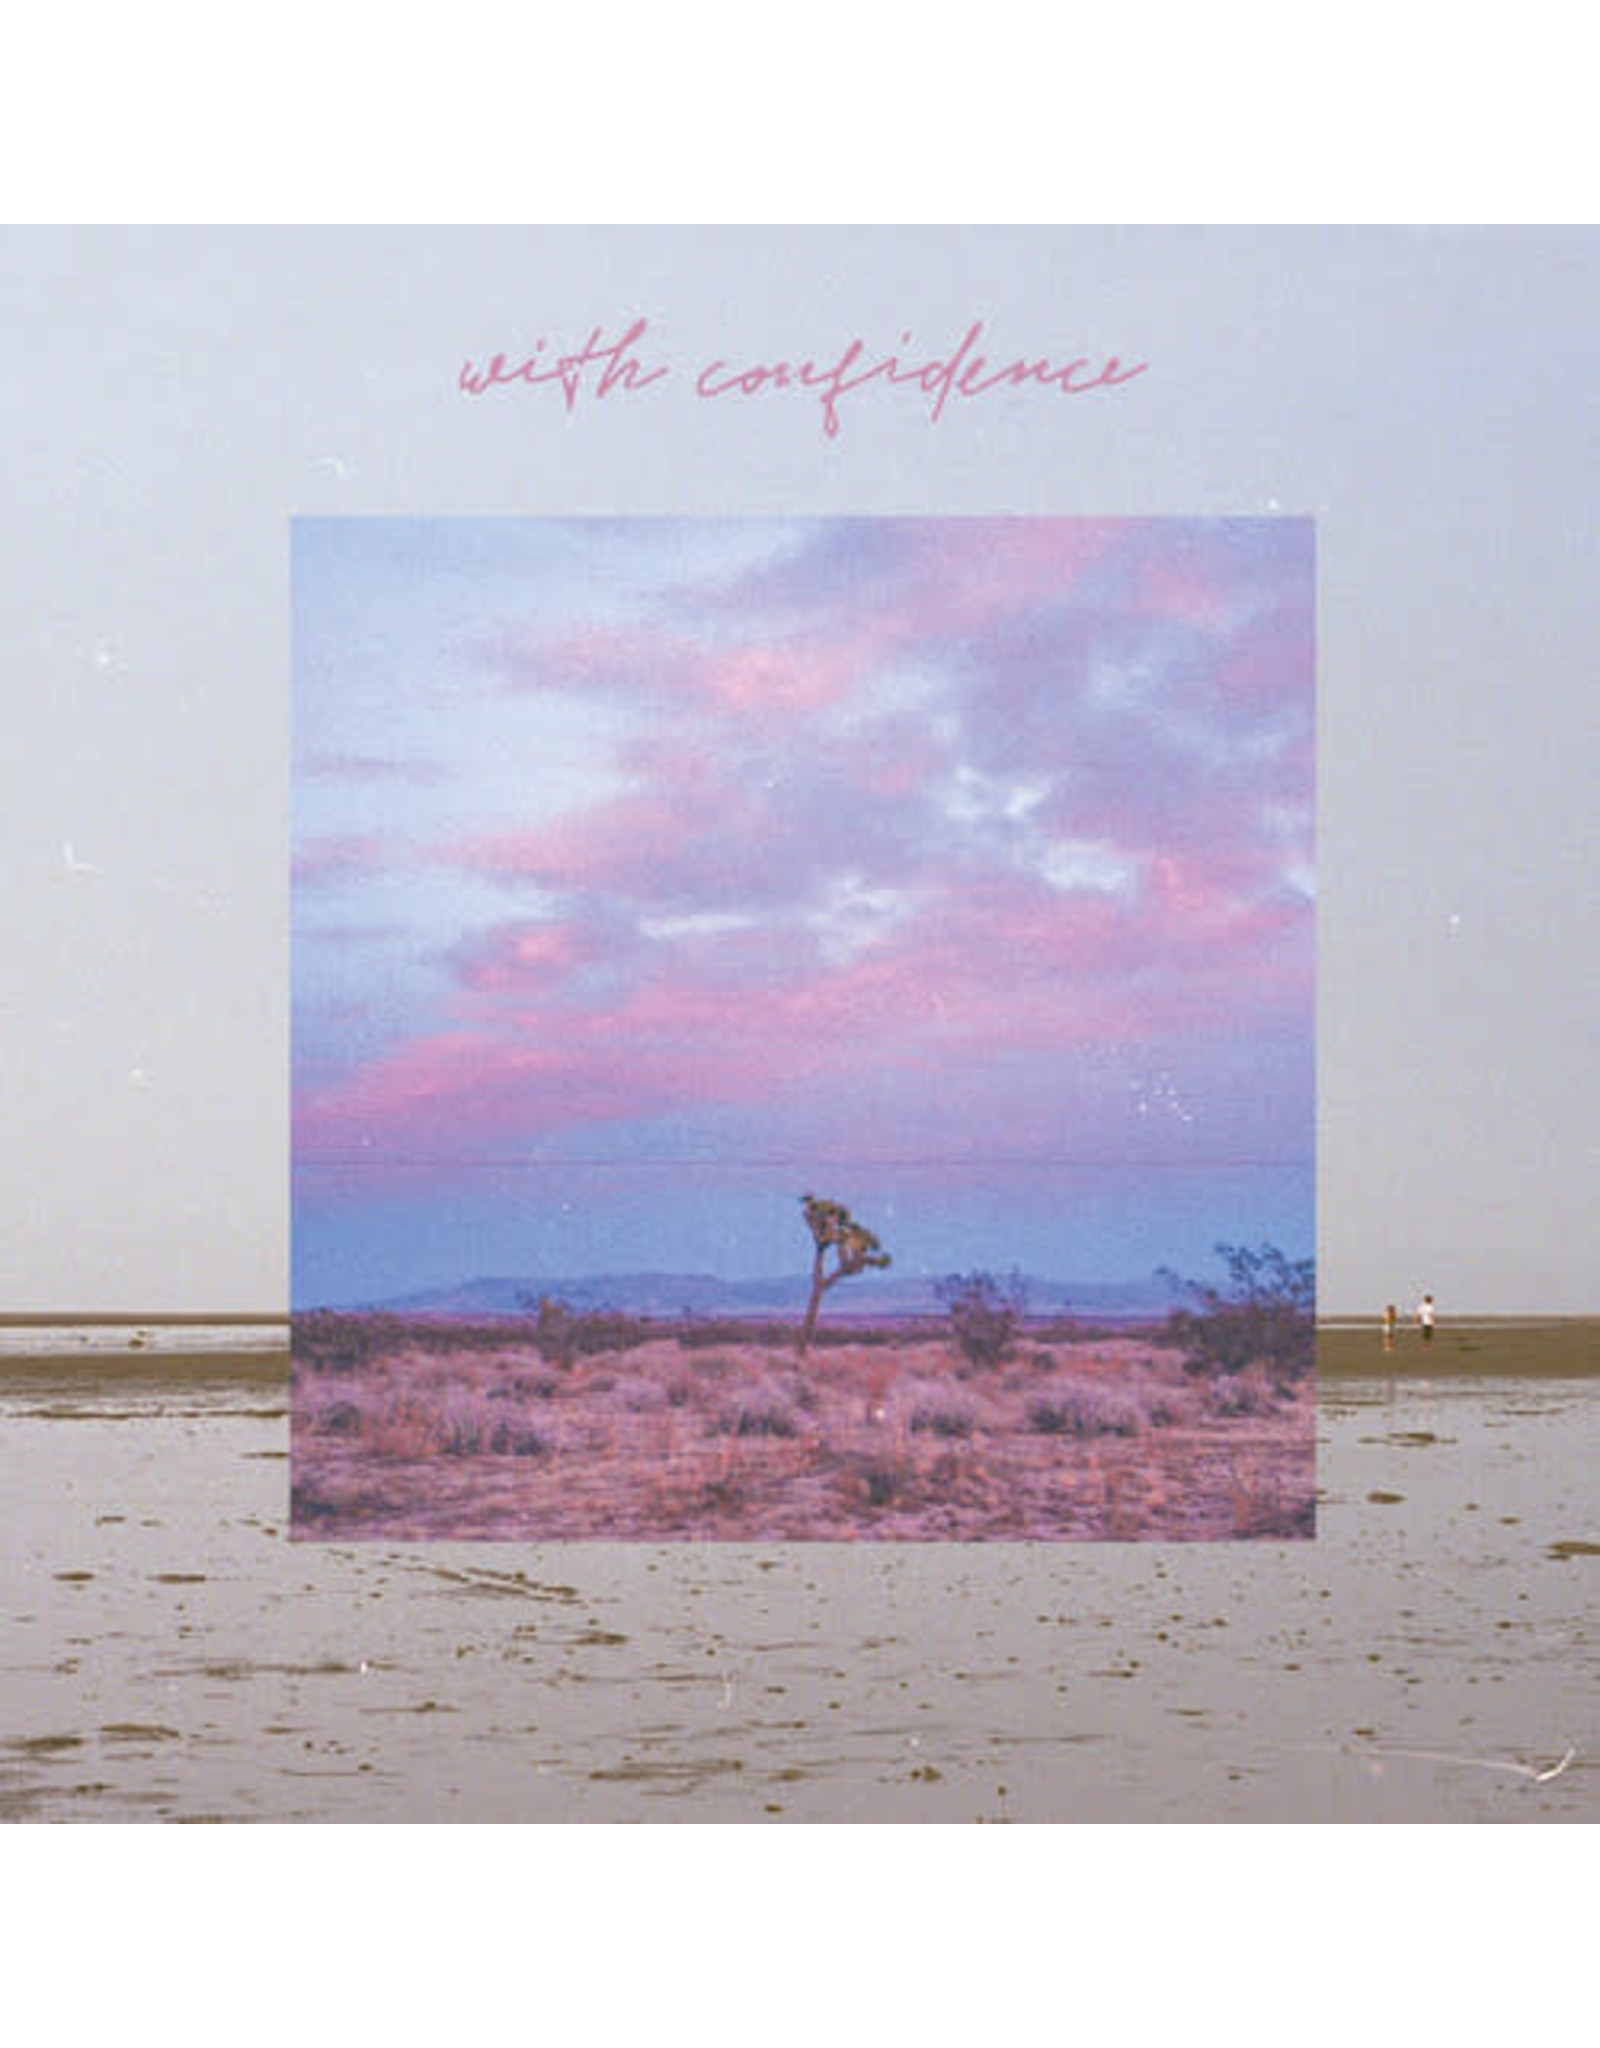 New Vinyl With Confidence - S/T (IEX, Colored) LP